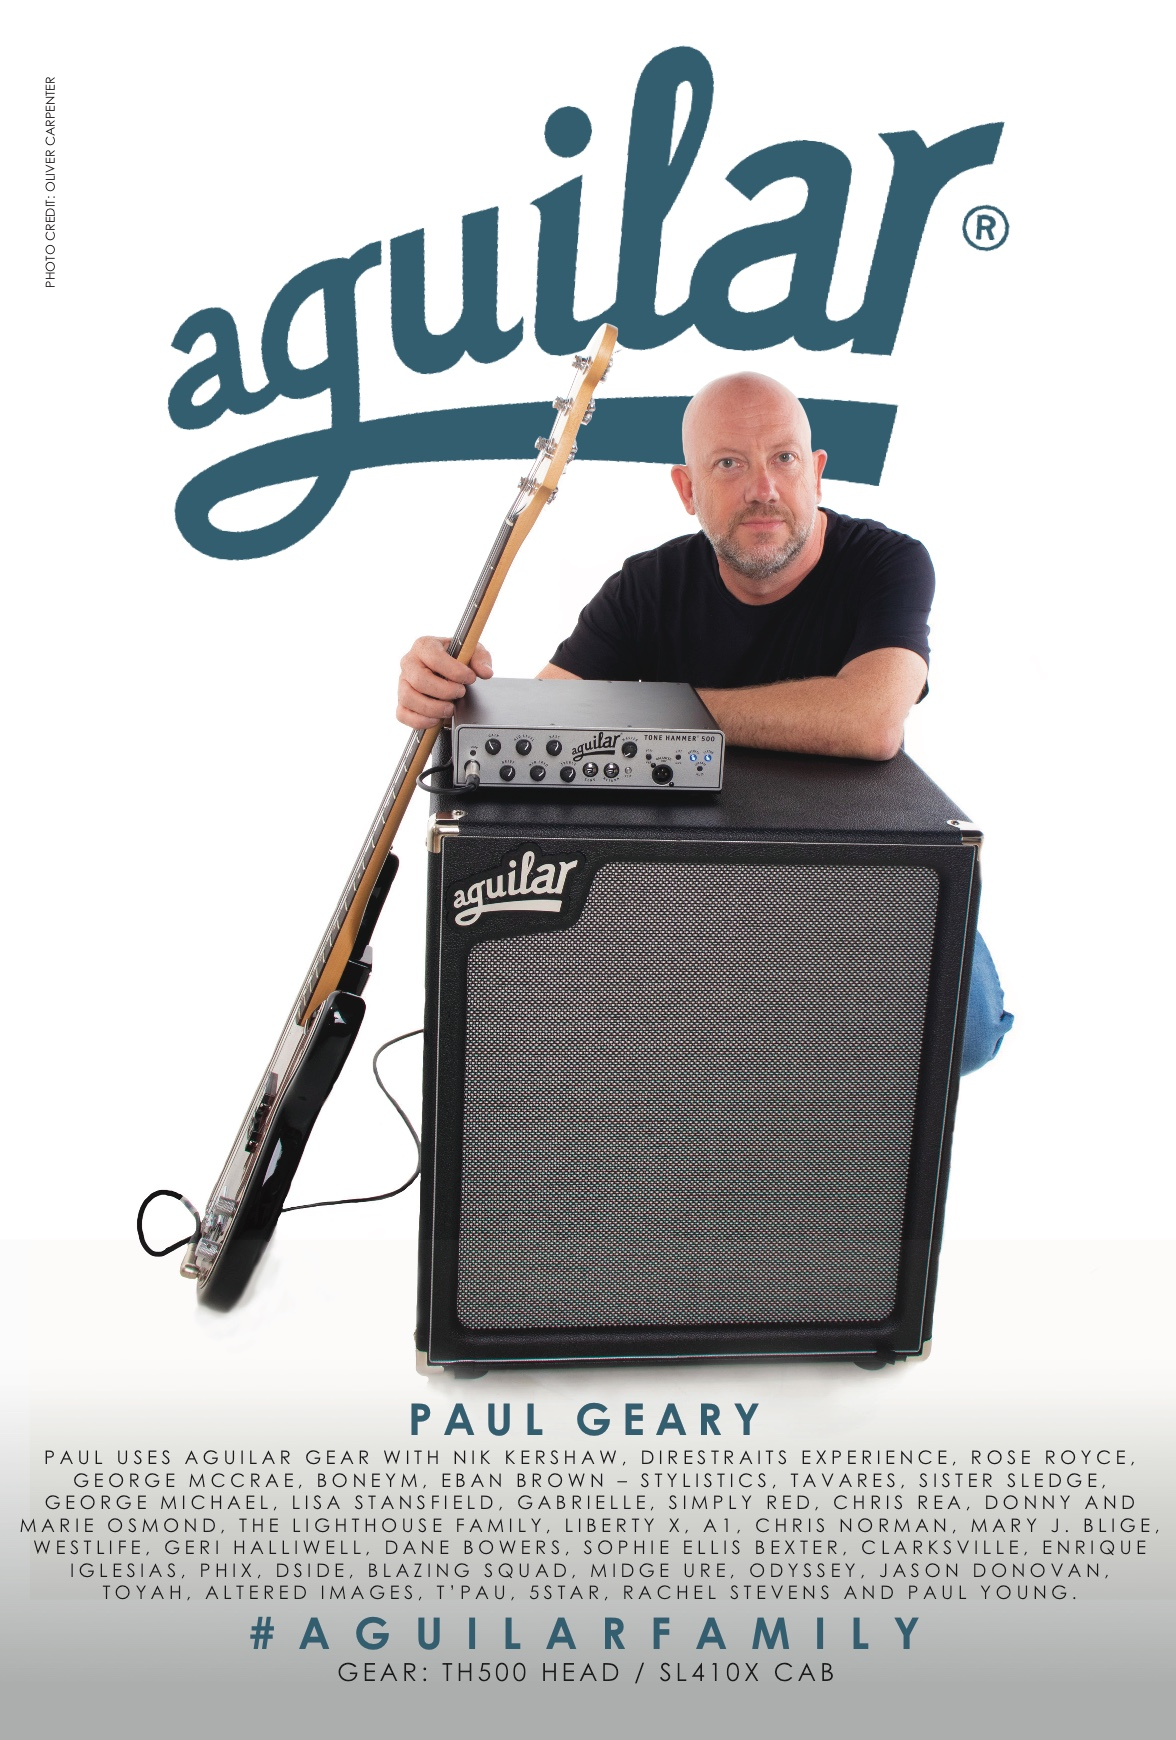 Paul uses Aguilar Gear!